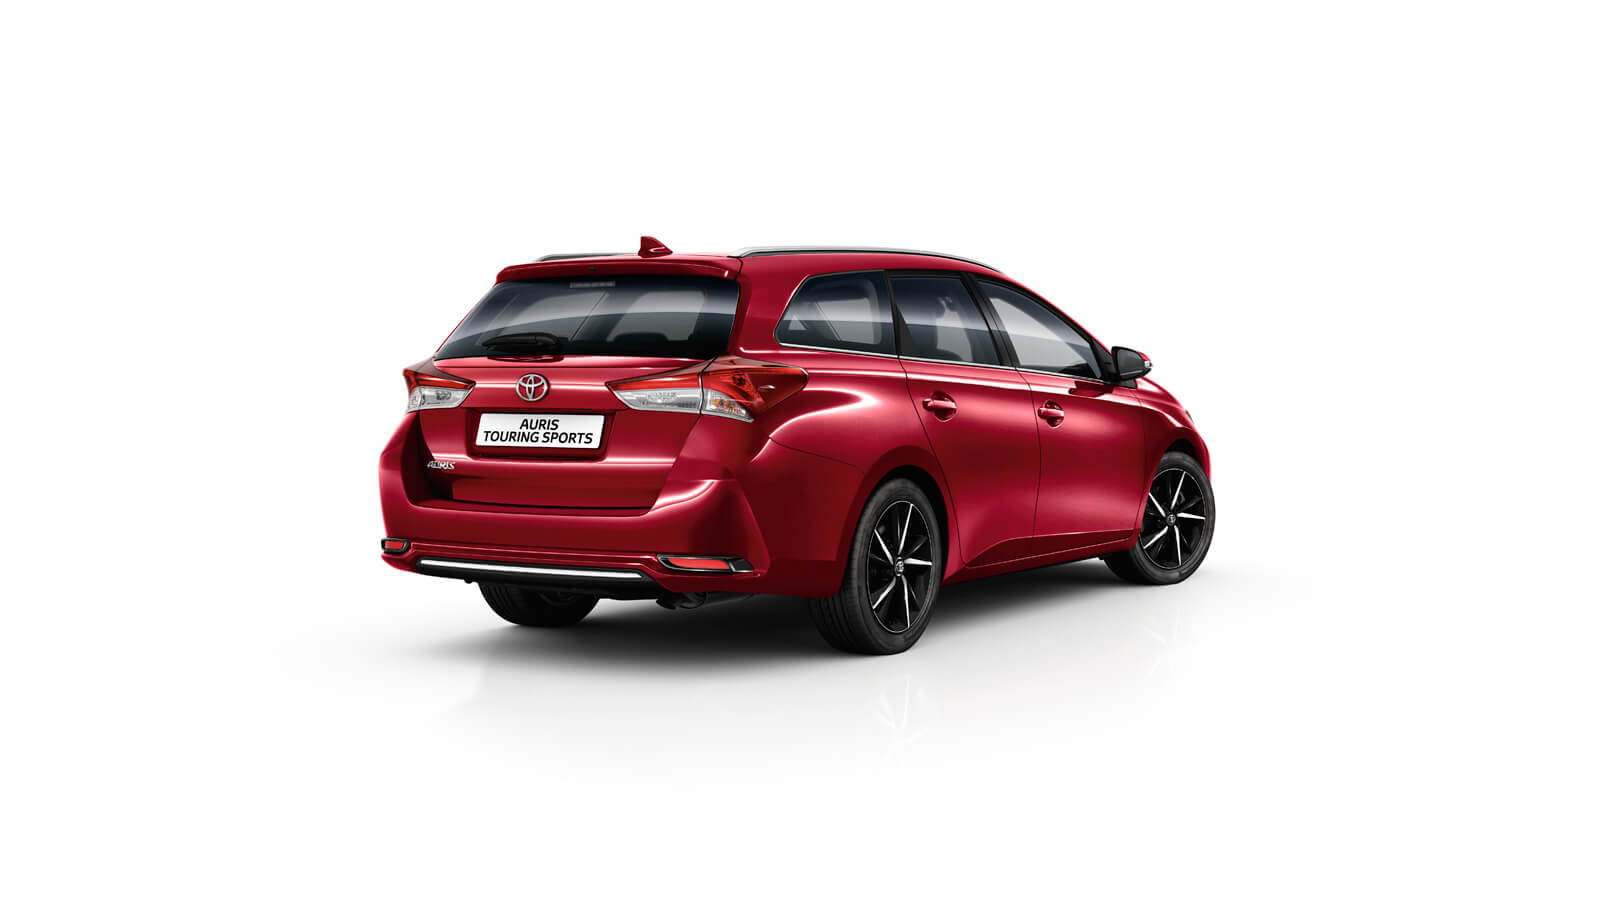 auris hybrid touring sports models features jemca. Black Bedroom Furniture Sets. Home Design Ideas